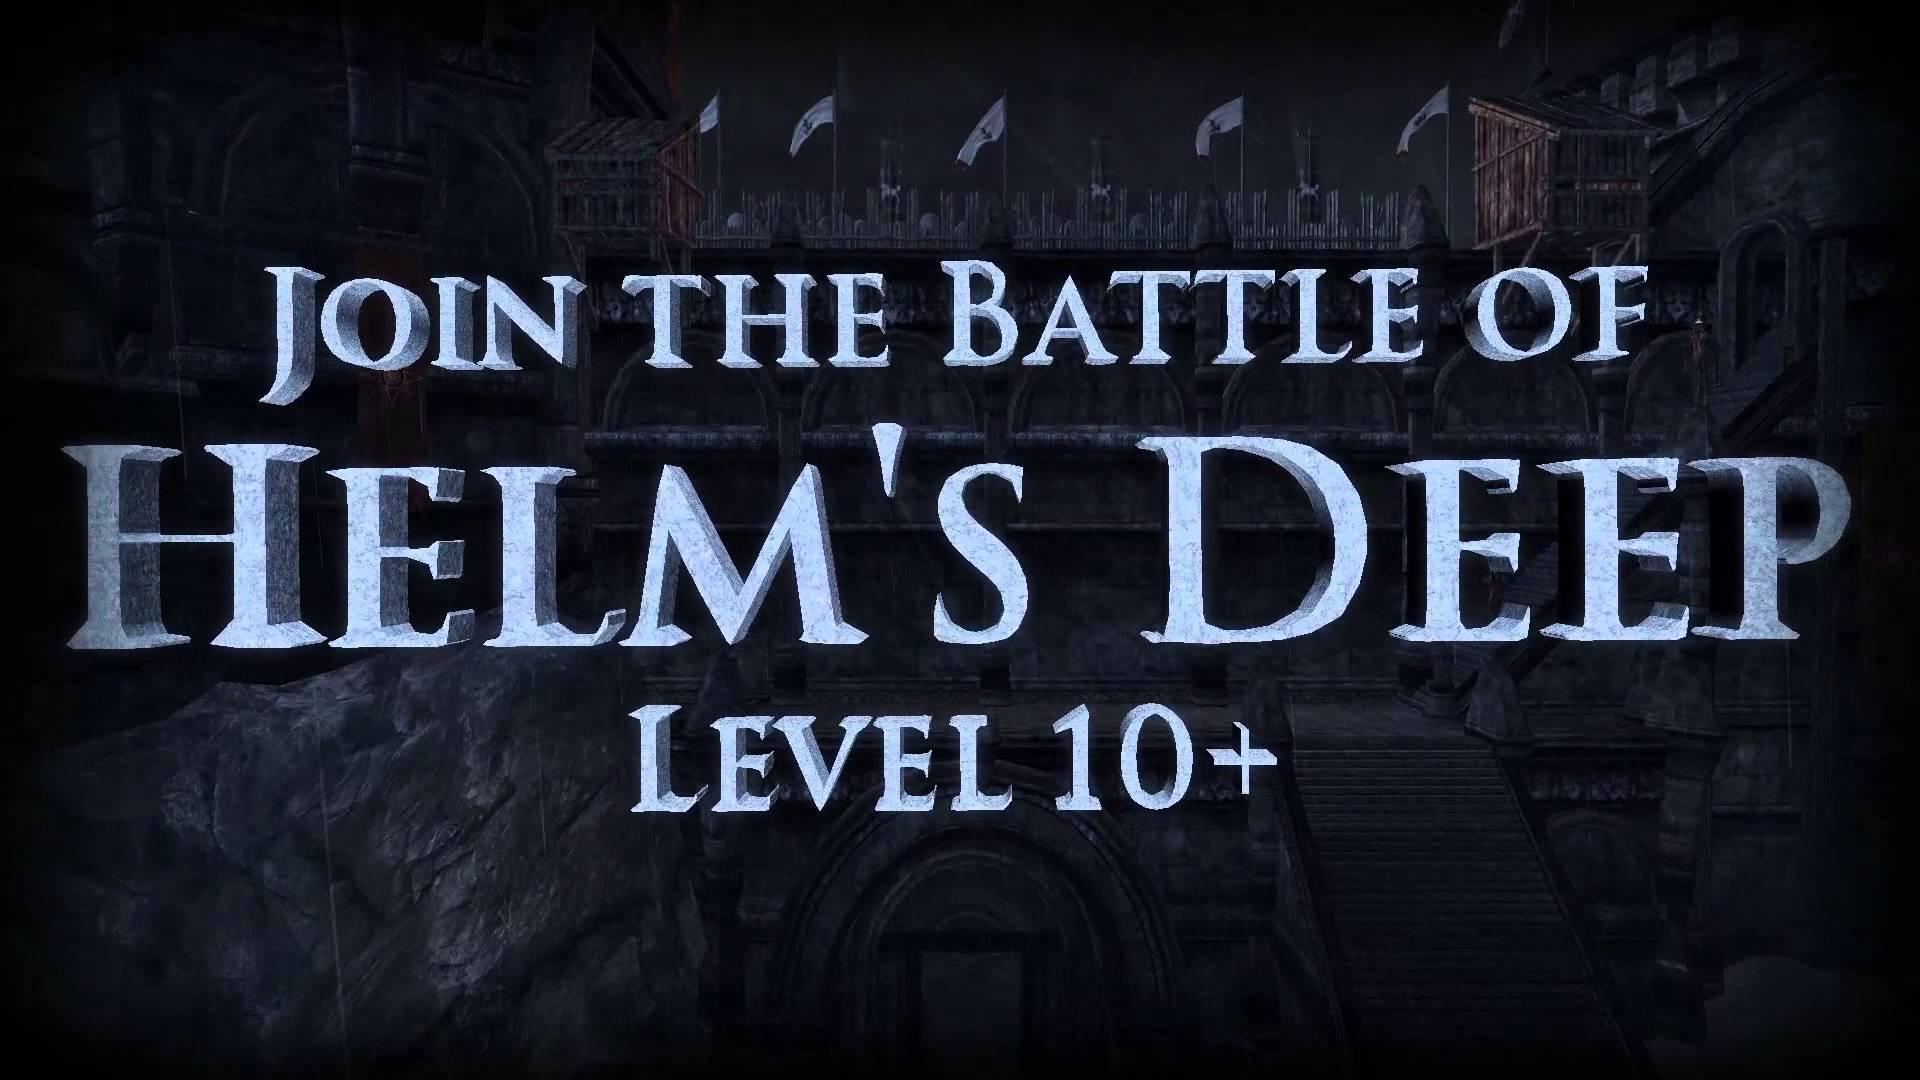 Trailer de lansare pentru The Lord of the Rings Online: Helm's Deep